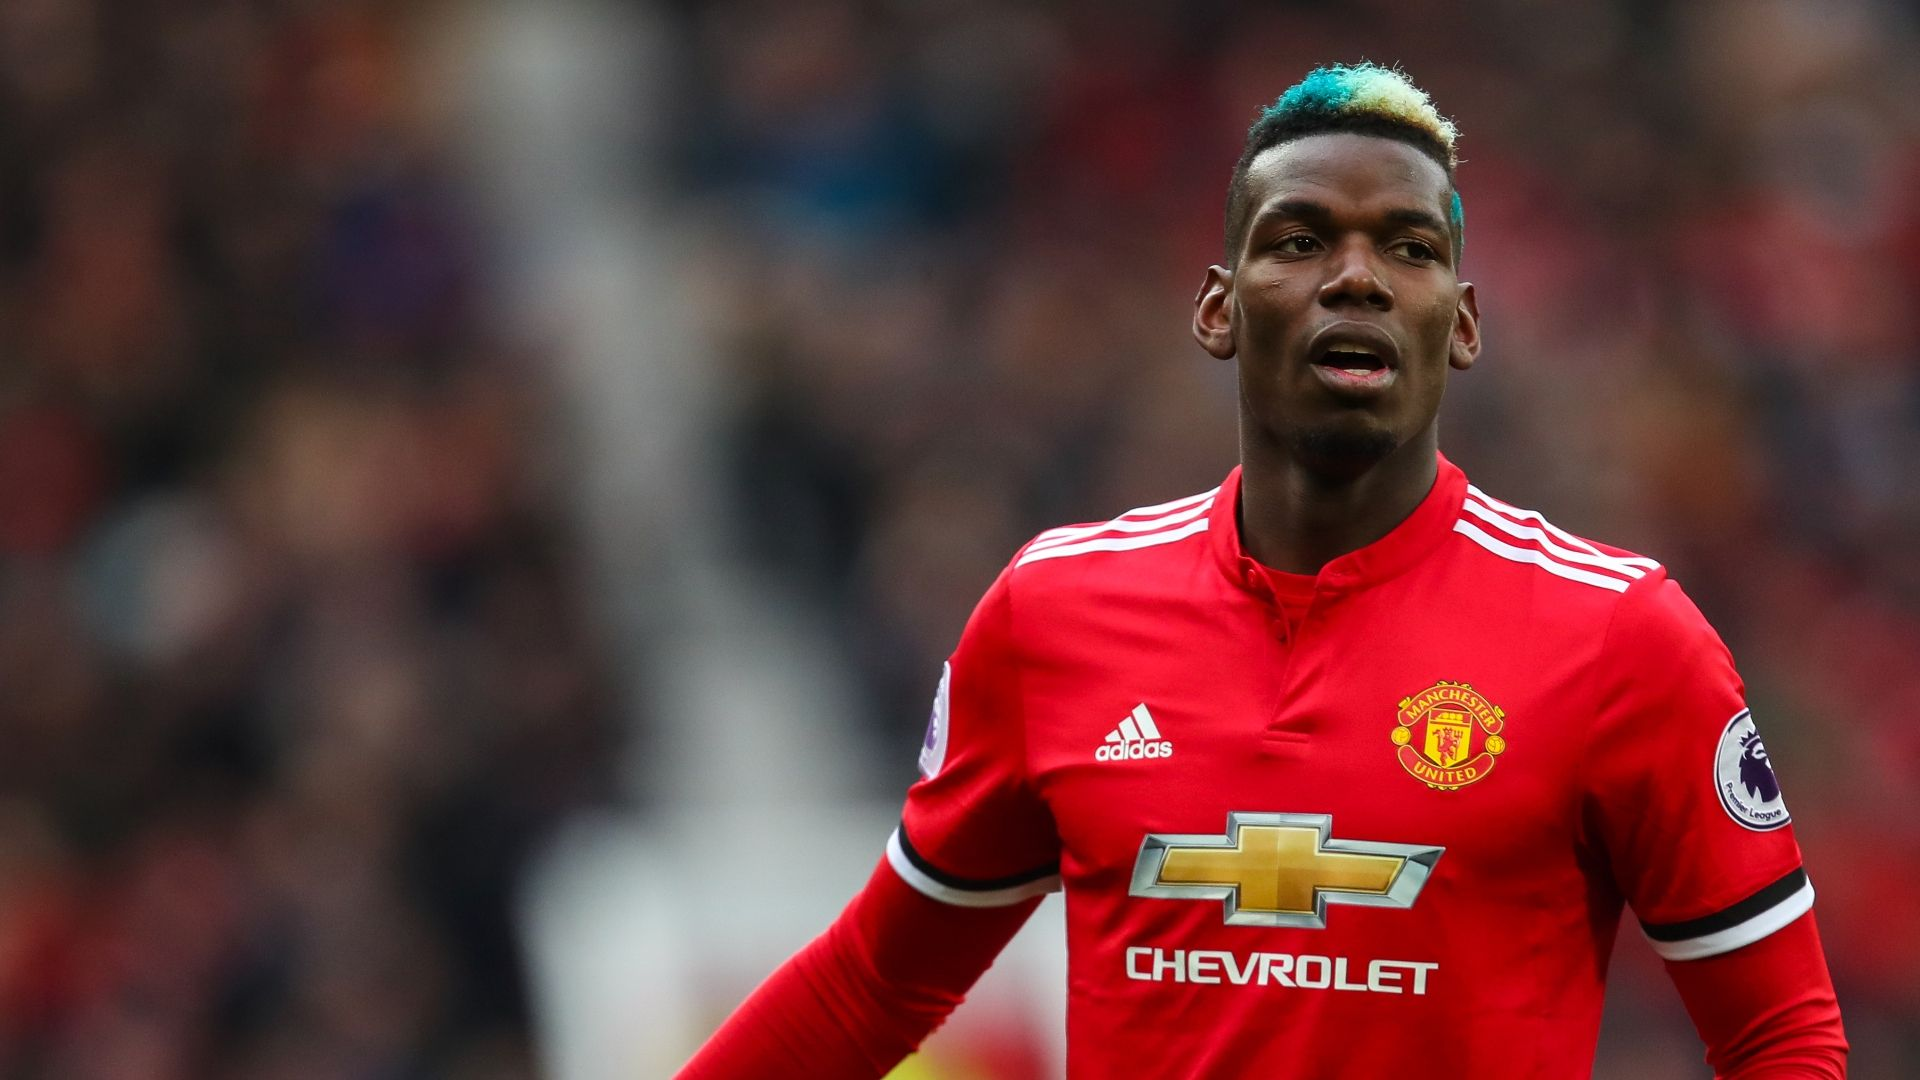 Cute Cartoon Wallpapers For Pc Paul Pogba Wallpapers 2018